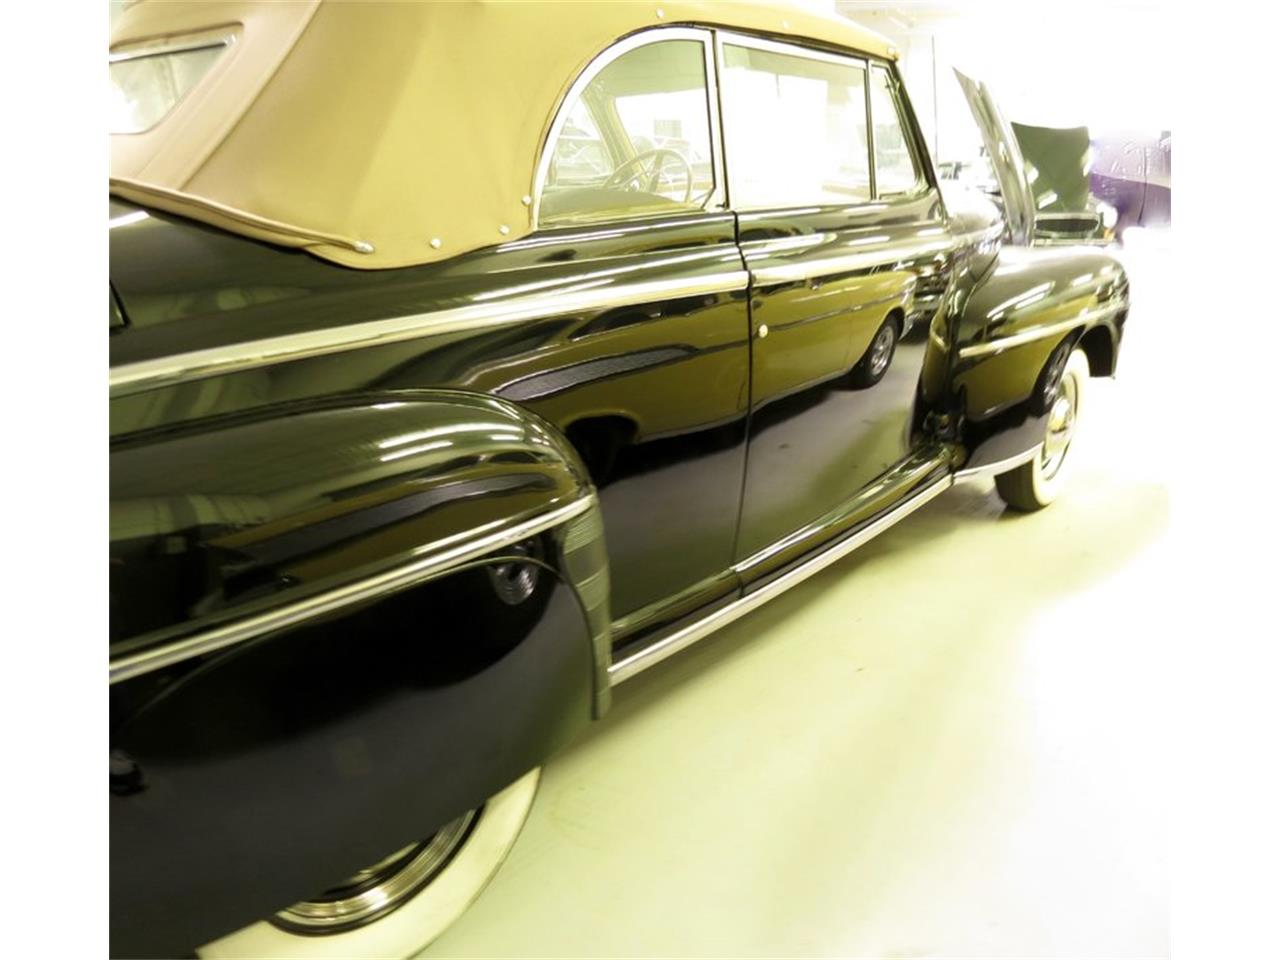 Large Picture of '48 Ford Super Deluxe located in Dayton Ohio - $39,995.00 Offered by Gem City Classic Autos - FHXH